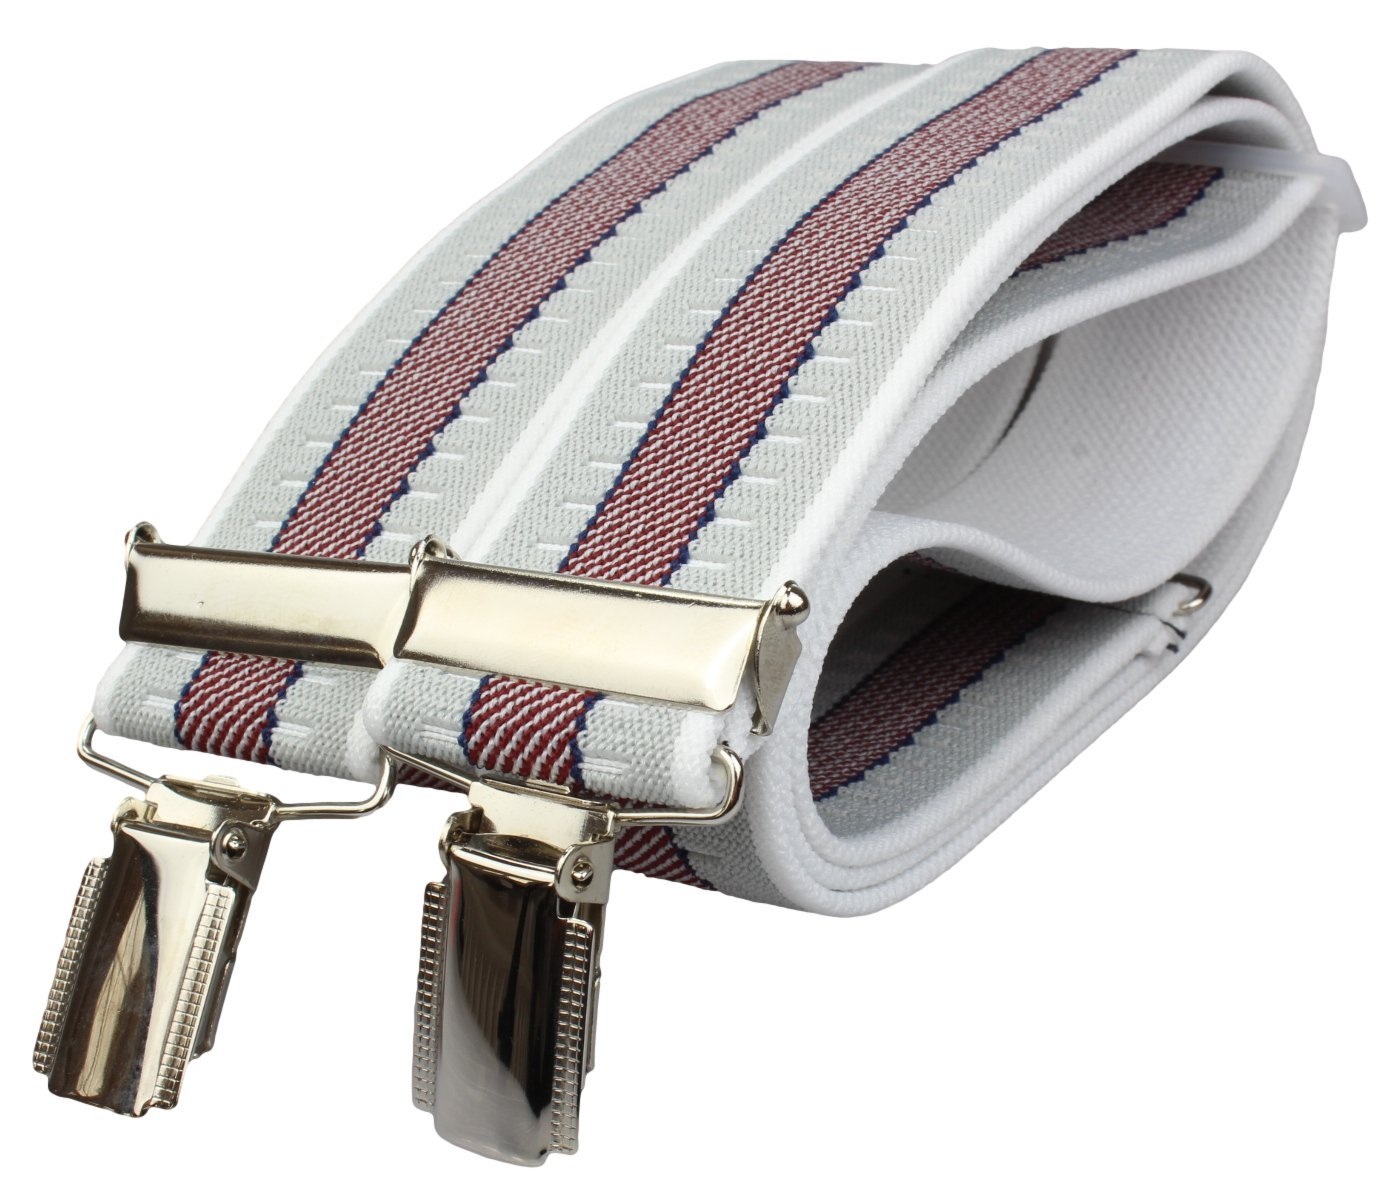 Trouser Braces Suspenders extra strong with 4 Clips | 35mm wide | 19 colours | black, plain, stripes, neon and many more ht_br